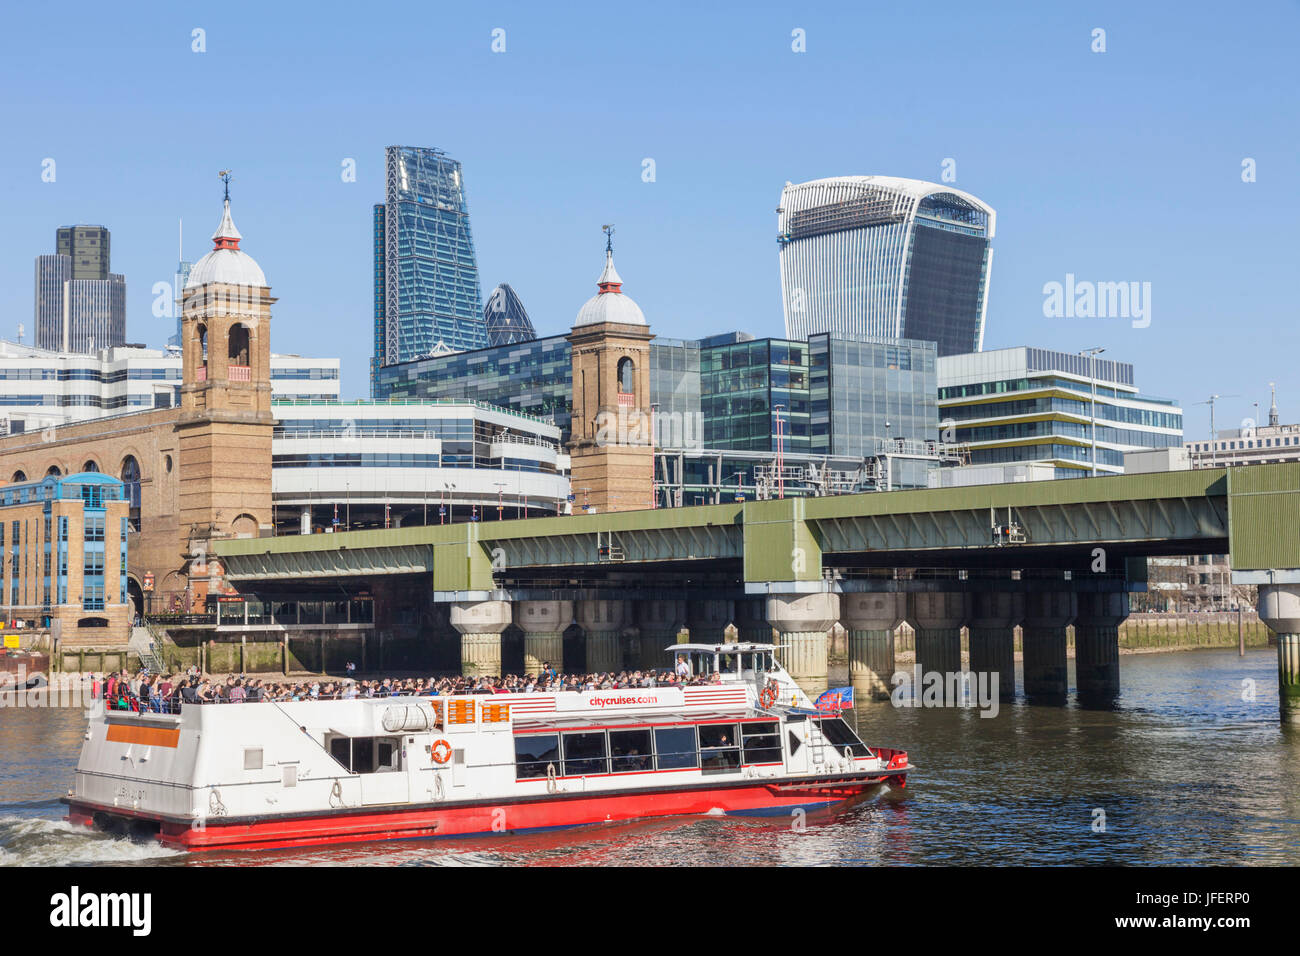 England, London, The City, Tour Boat Passing City Skyline and Cannon Street Station - Stock Image